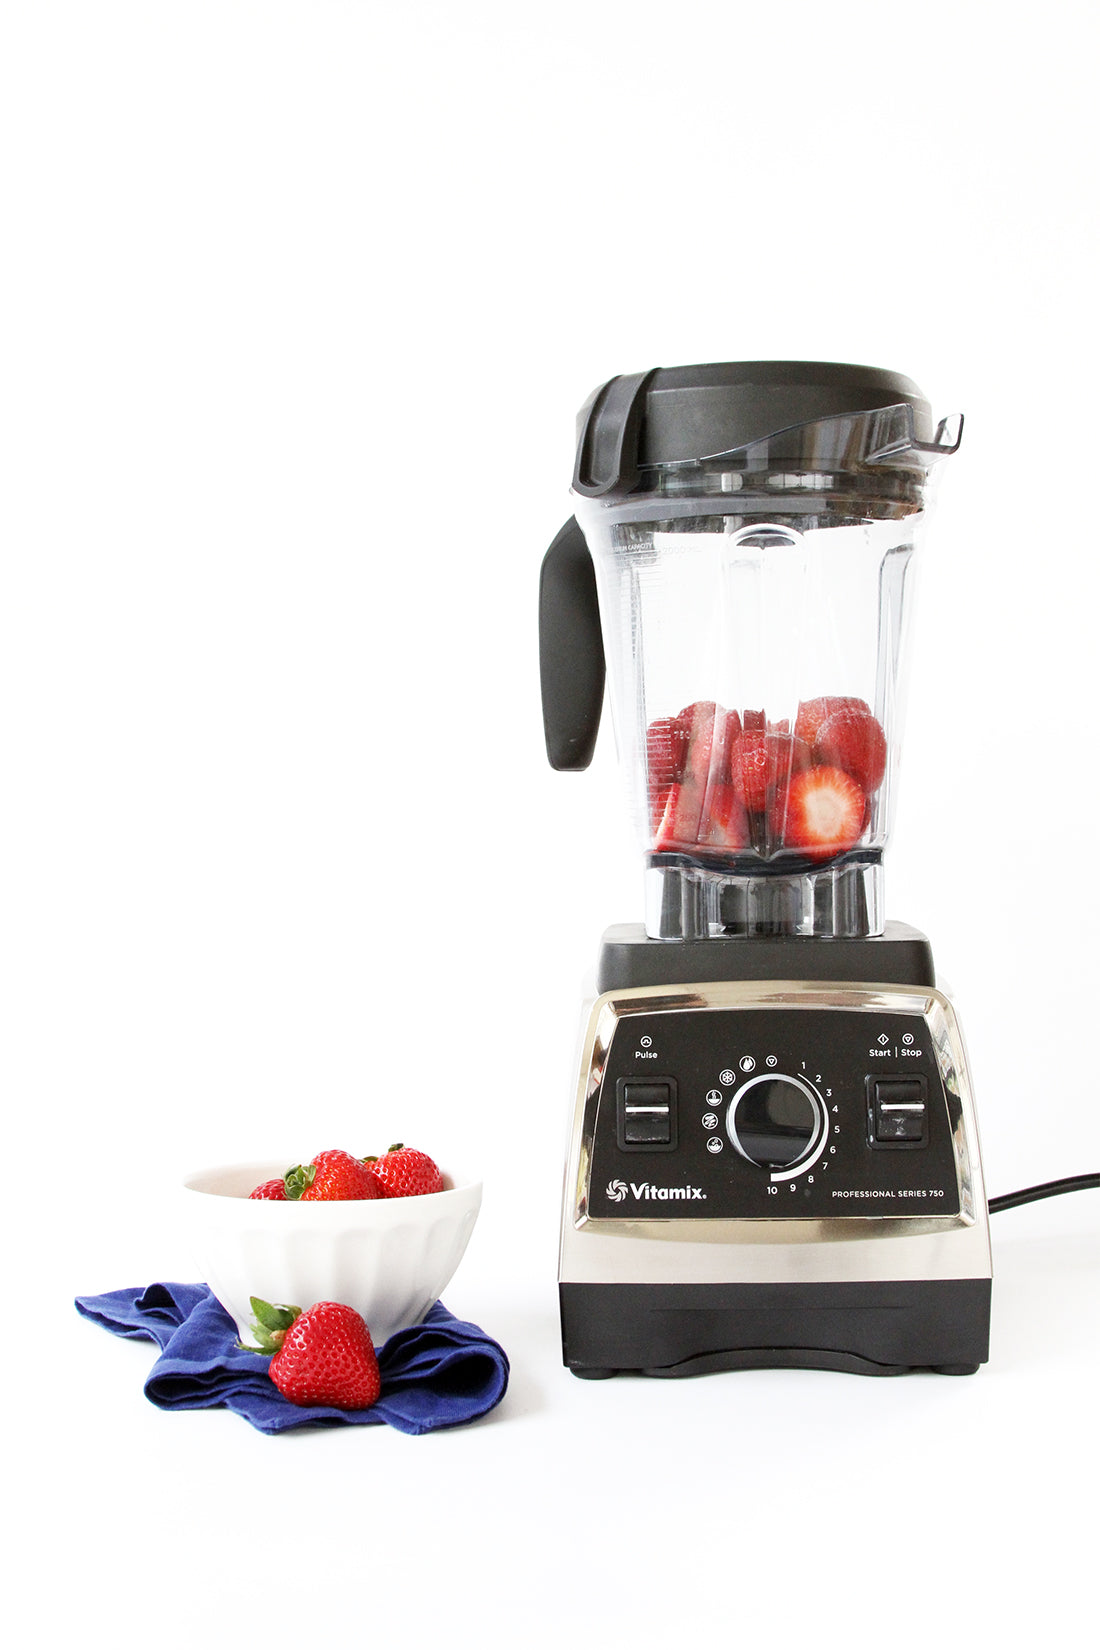 Image of strawberries in a blender next to a bowl of strawberries used for Miss Jones Baking Co Firecracker Pops recipe